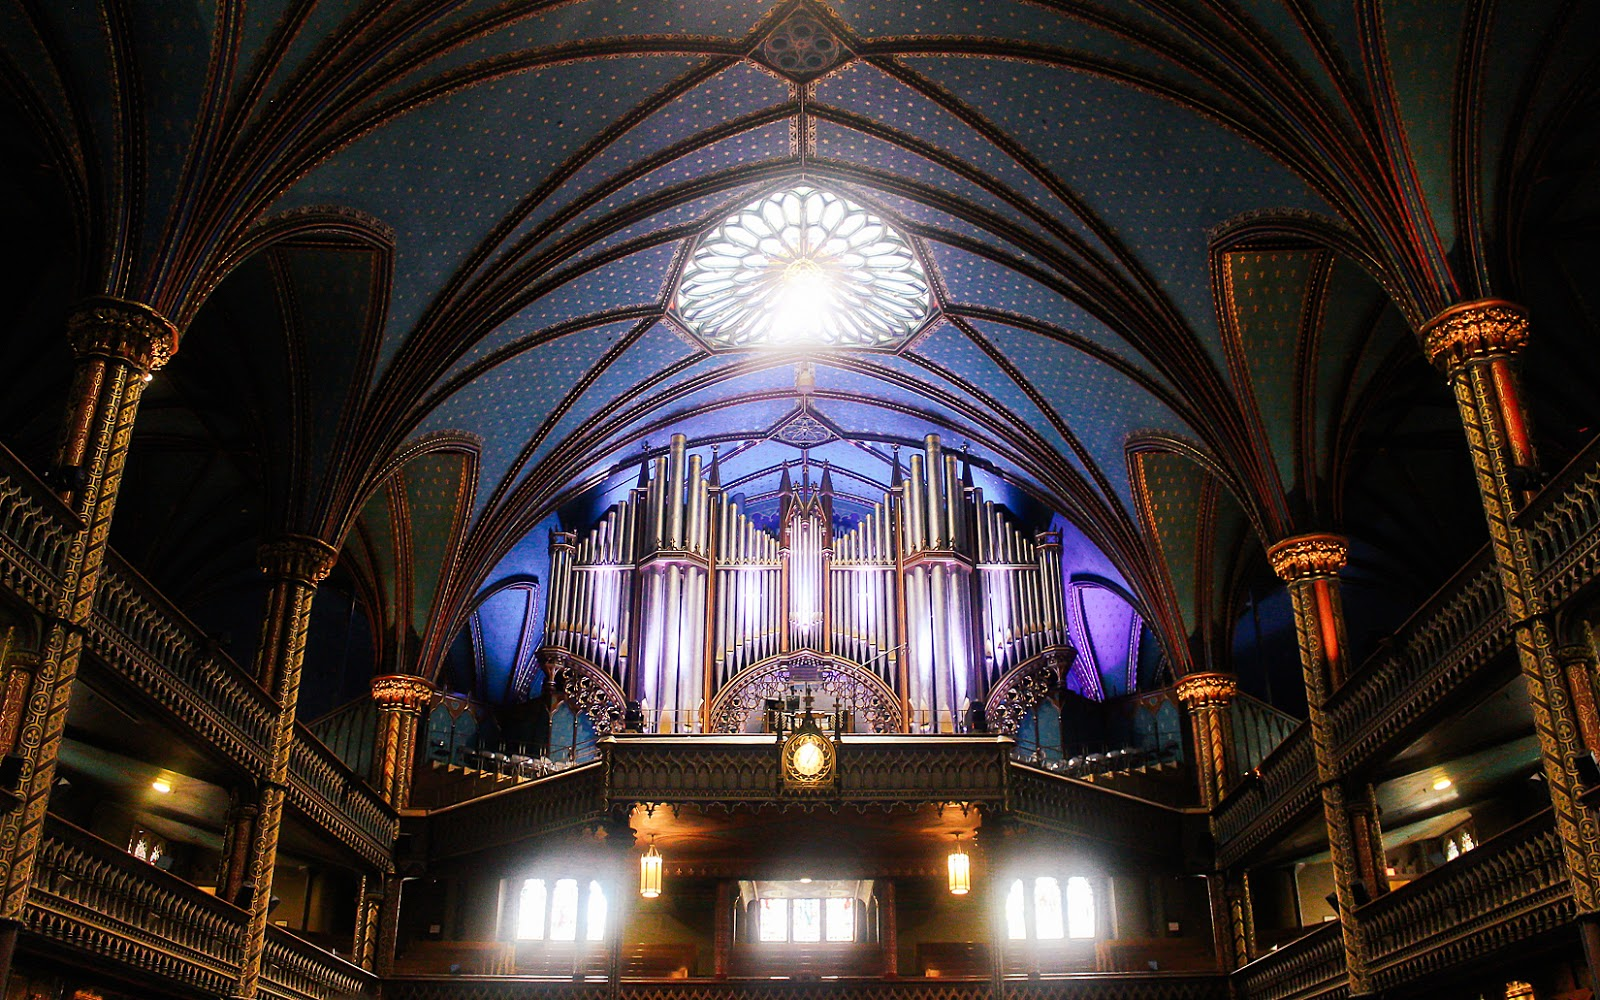 Notre-Dame Basilica Montreal: Things to Do in Montreal, Quebec, Montreal